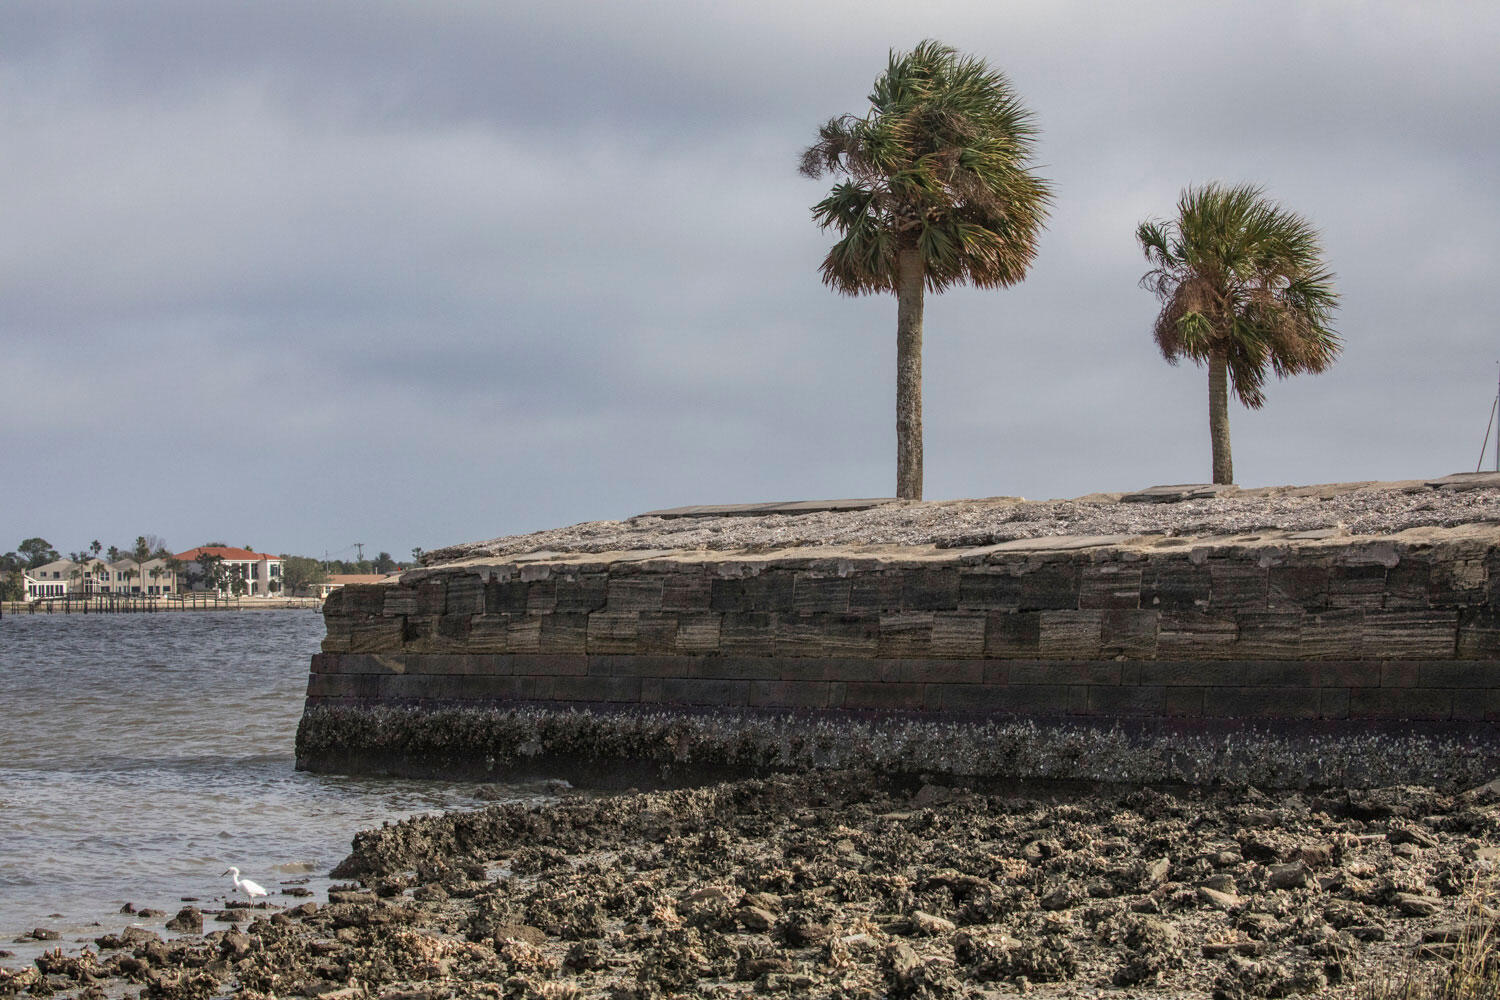 During Hurricane Matthew last year, seawater was able to breach the seven-foot-high walls of Castillo de San Marcos, a centuries-old fort in St. Augustine. Andrew Moore